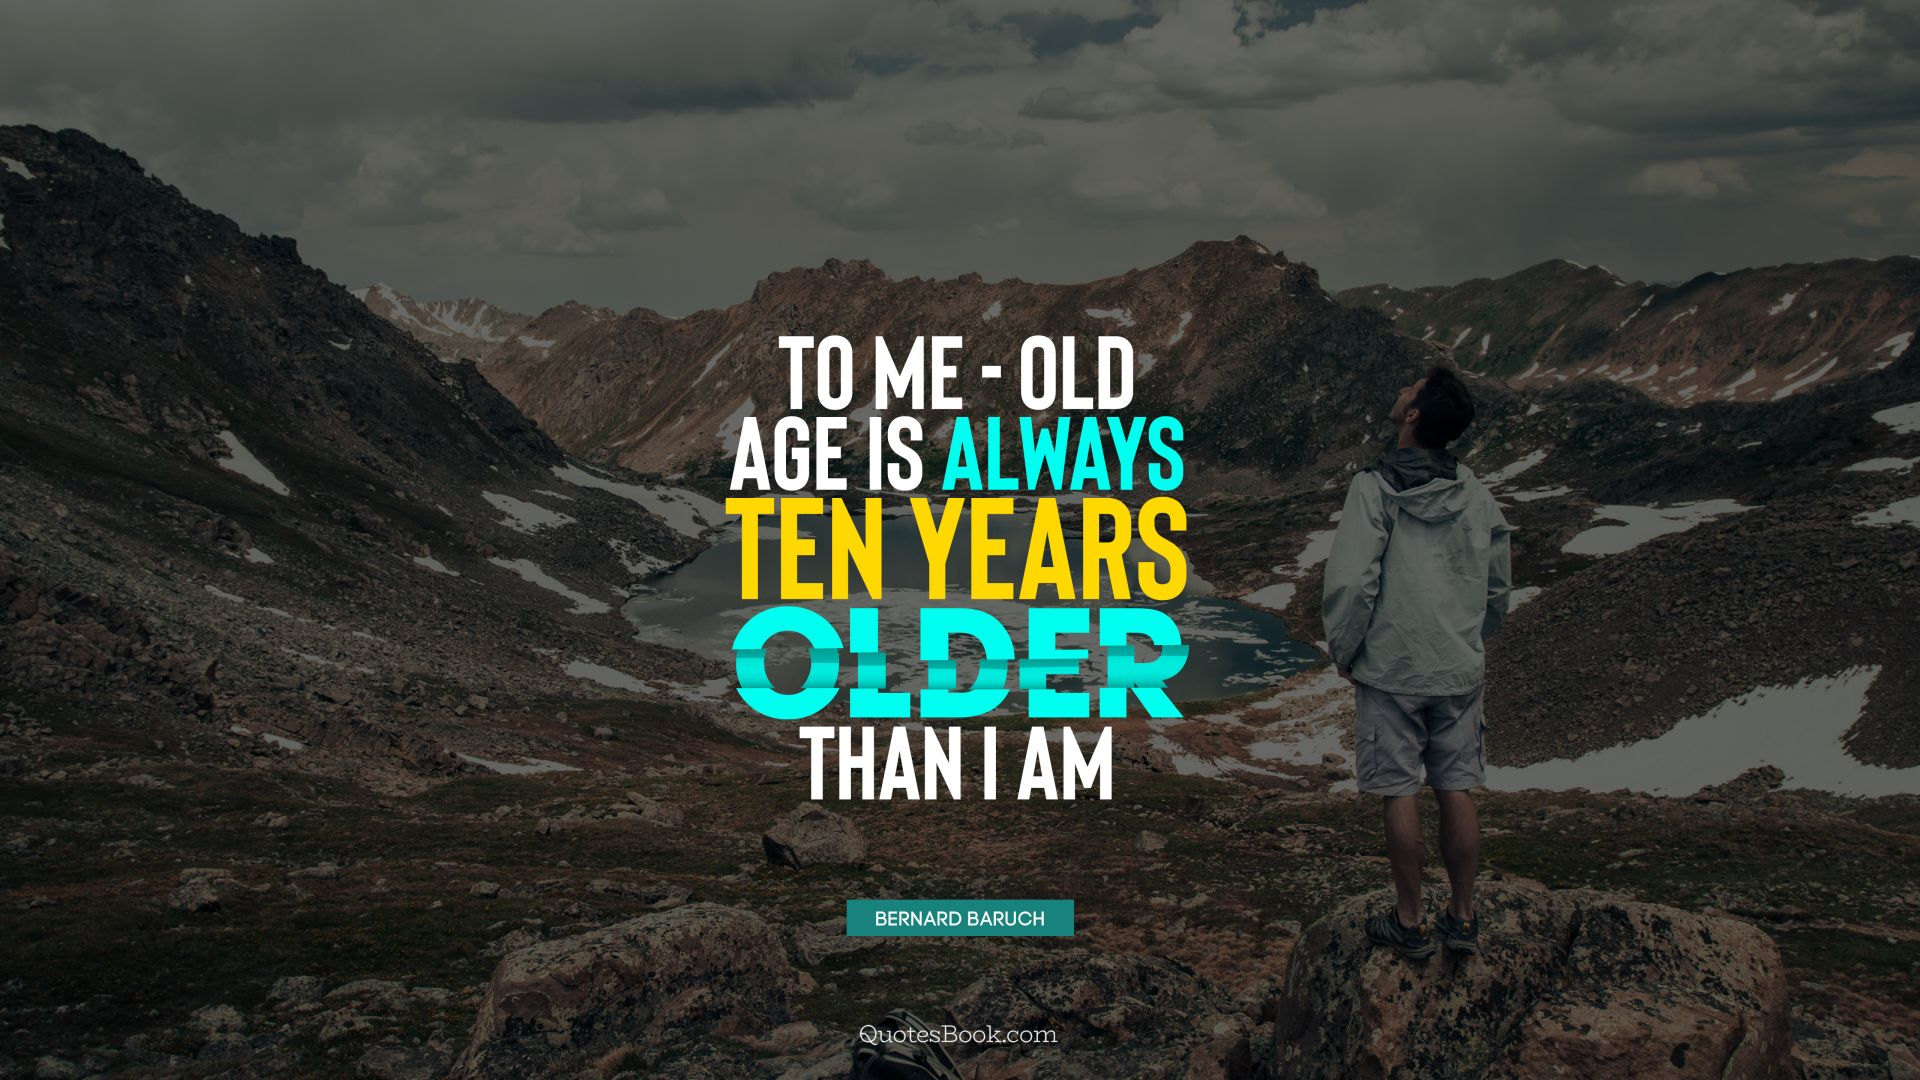 To me - old age is always ten years older than I am. - Quote by Bernard Baruch